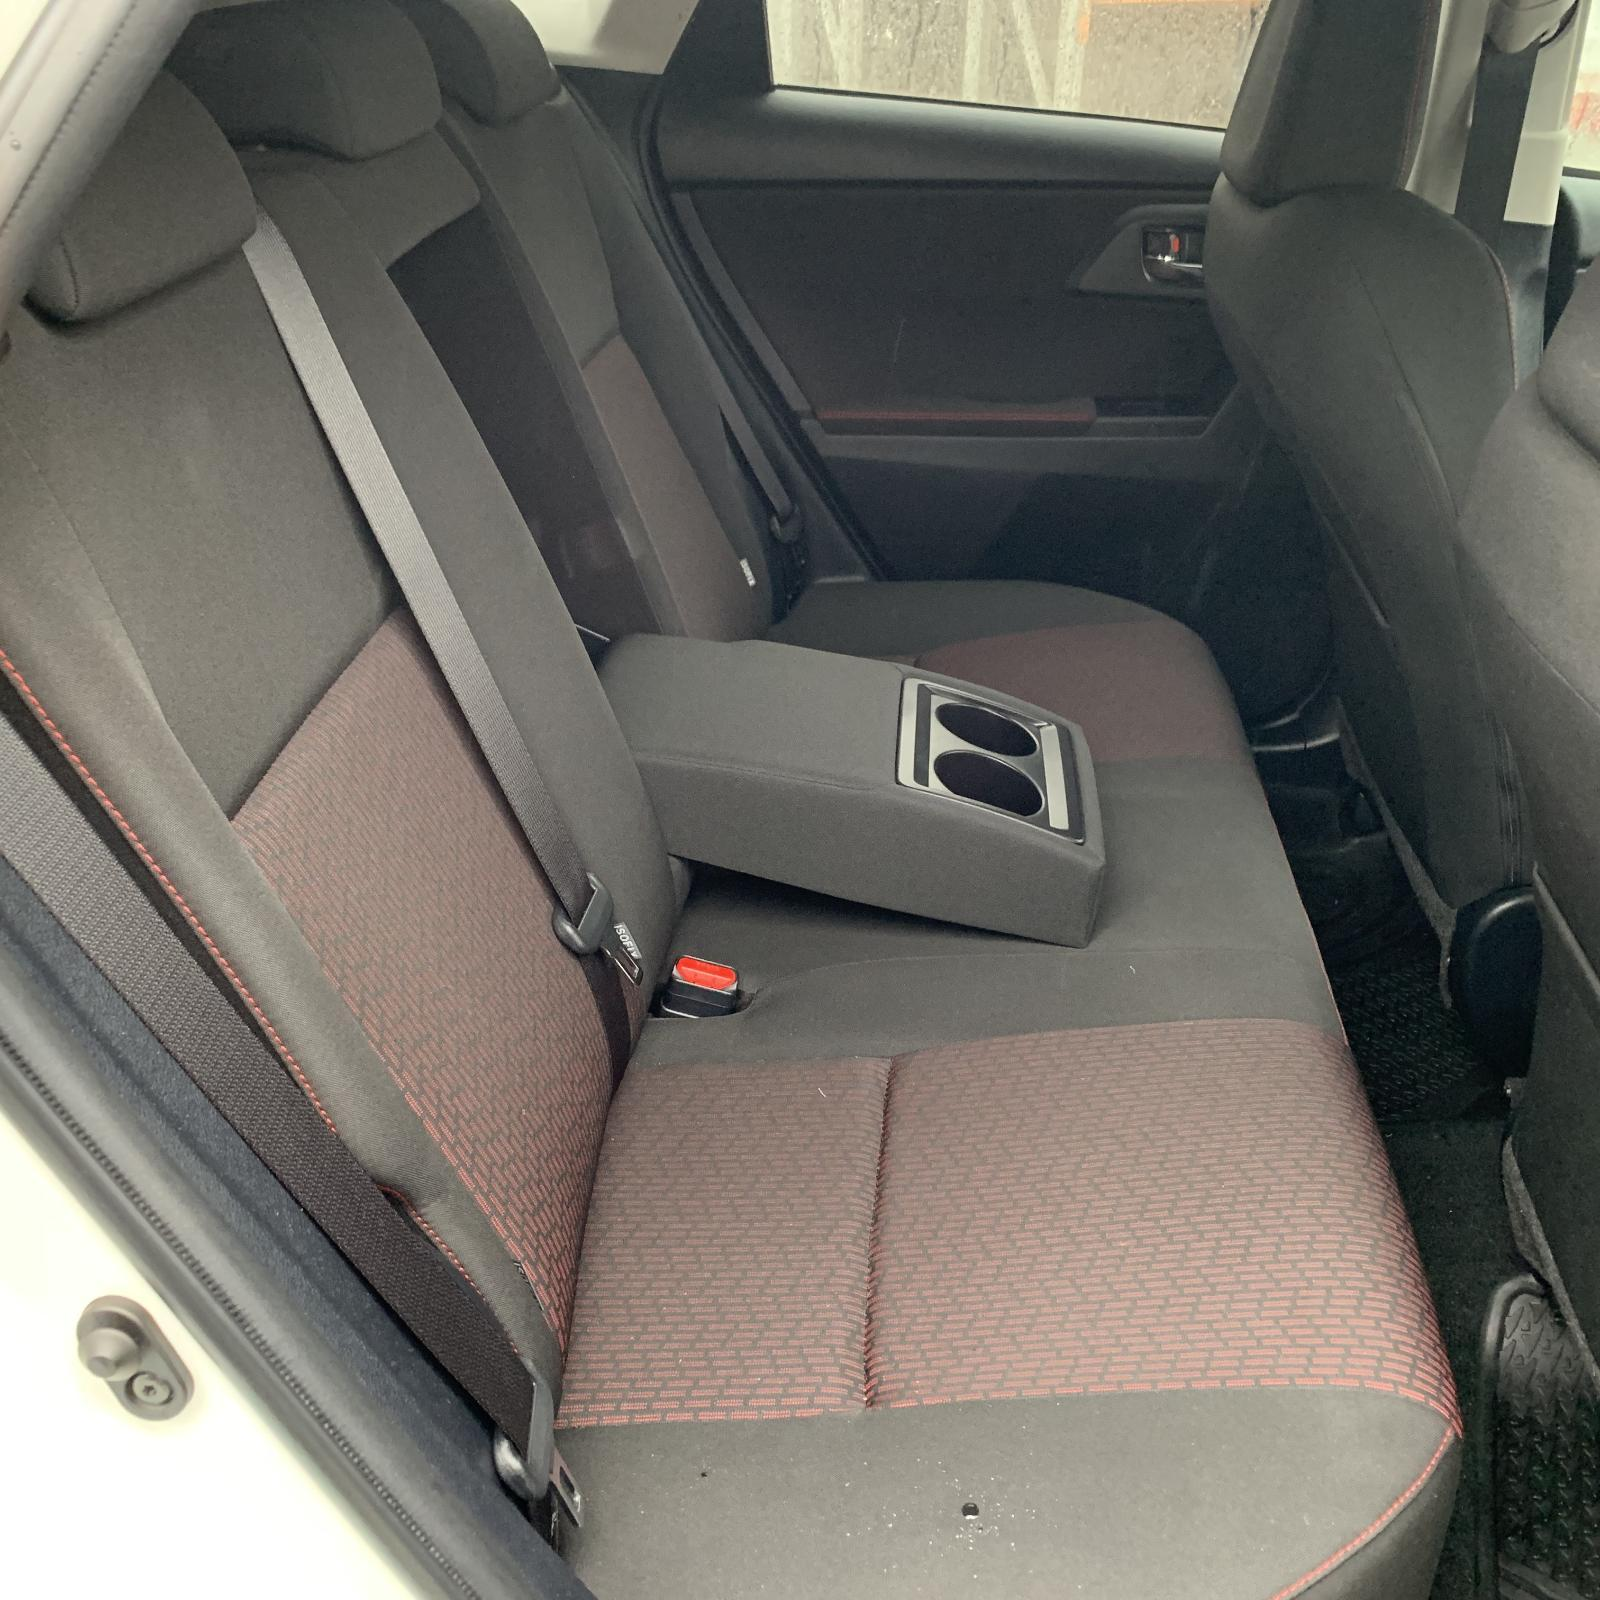 TOYOTA COROLLA, 2nd Seat (Rear Seat), RH REAR, HATCH, ZRE182R, CLOTH, SX, 10/12-03/15